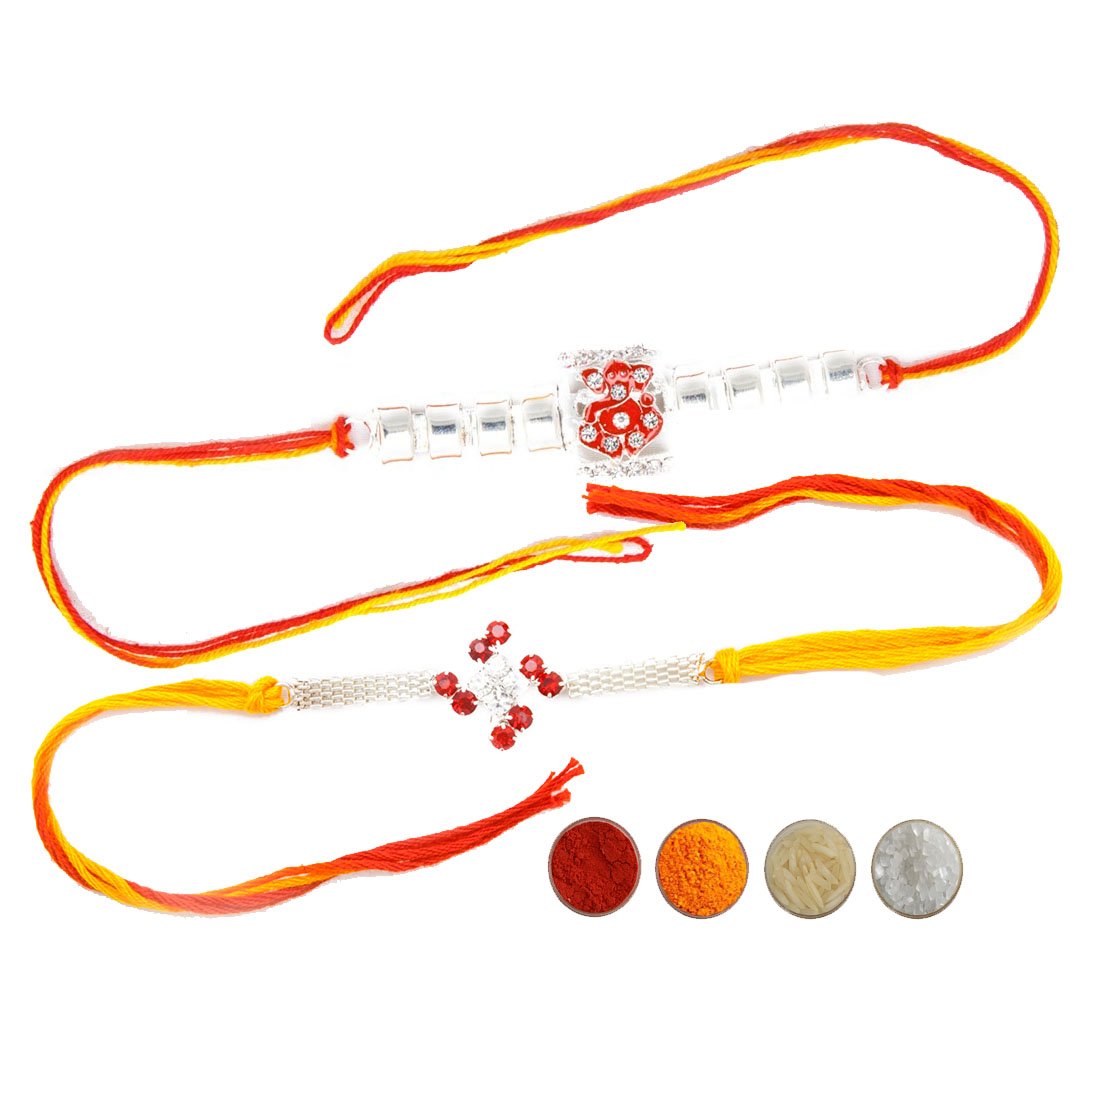 Premium Rakhi Set with Mauli Thread